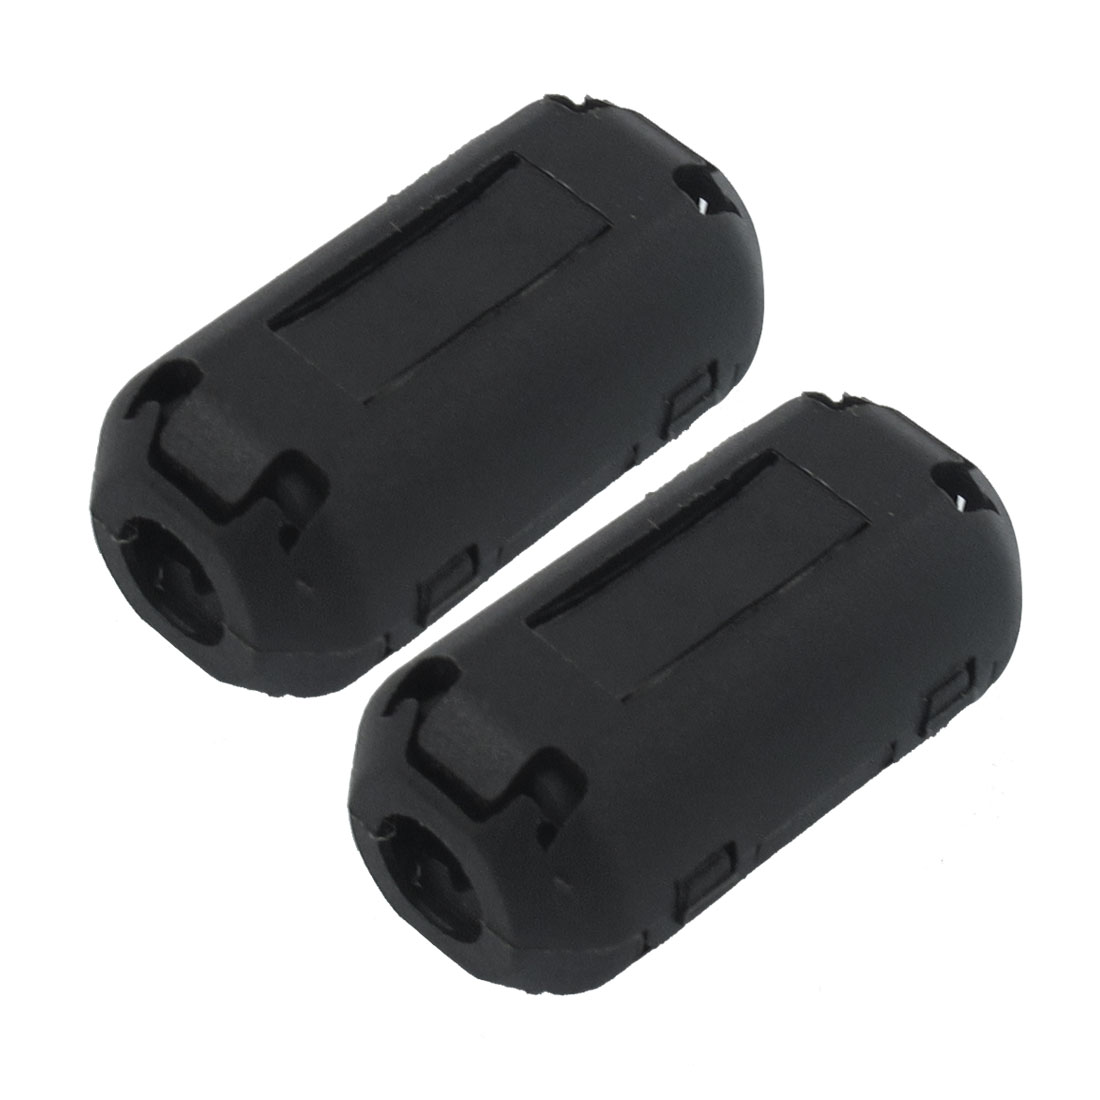 2 Pieces 35B Black Plastic Magnet Ferrite Cable Clip for 5mm Cable